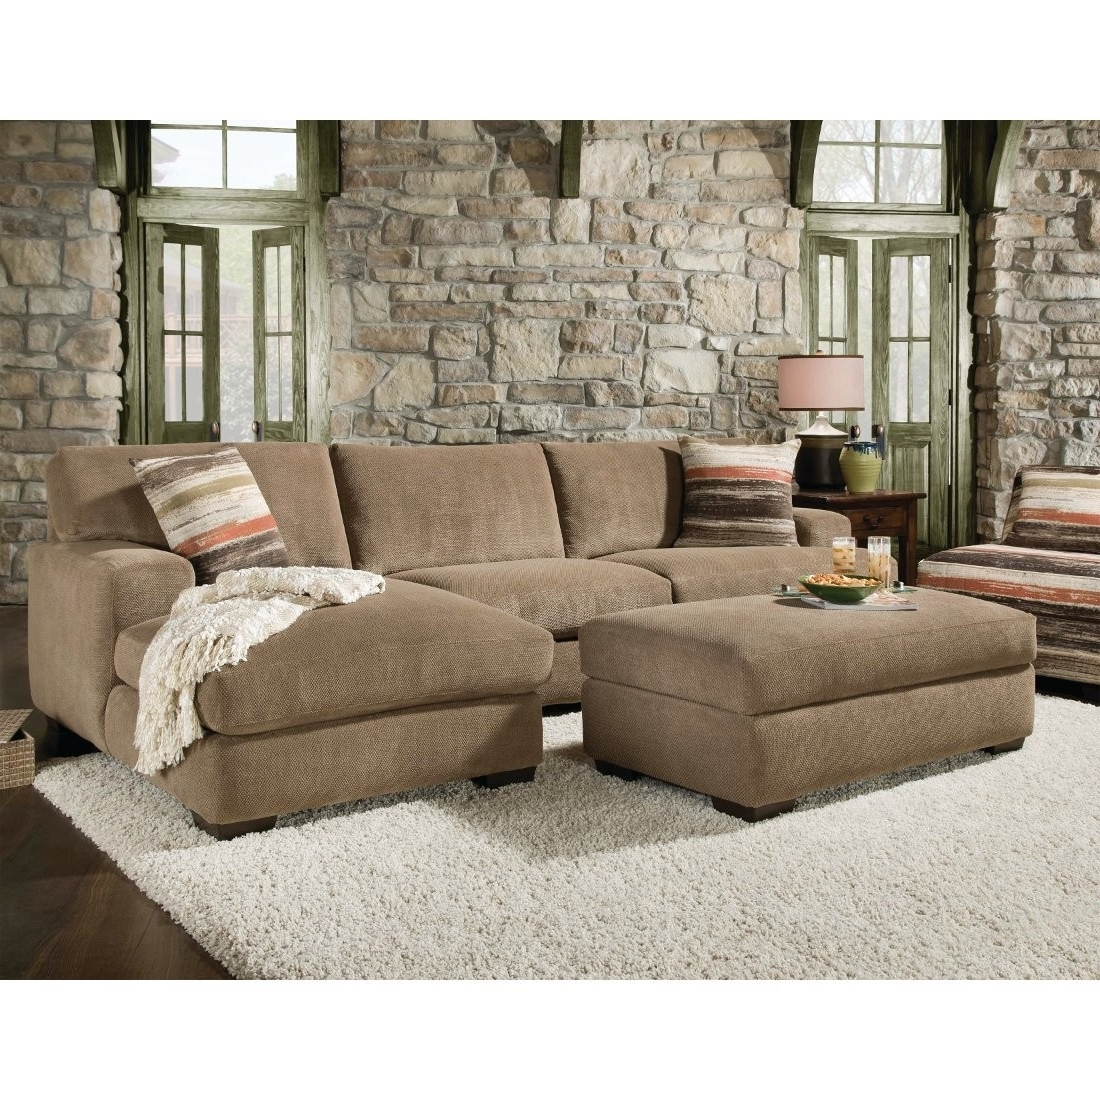 Well Liked Beautiful Sectional Sofa With Chaise And Ottoman Pictures Pertaining To Leather Sectionals With Chaise (View 15 of 15)